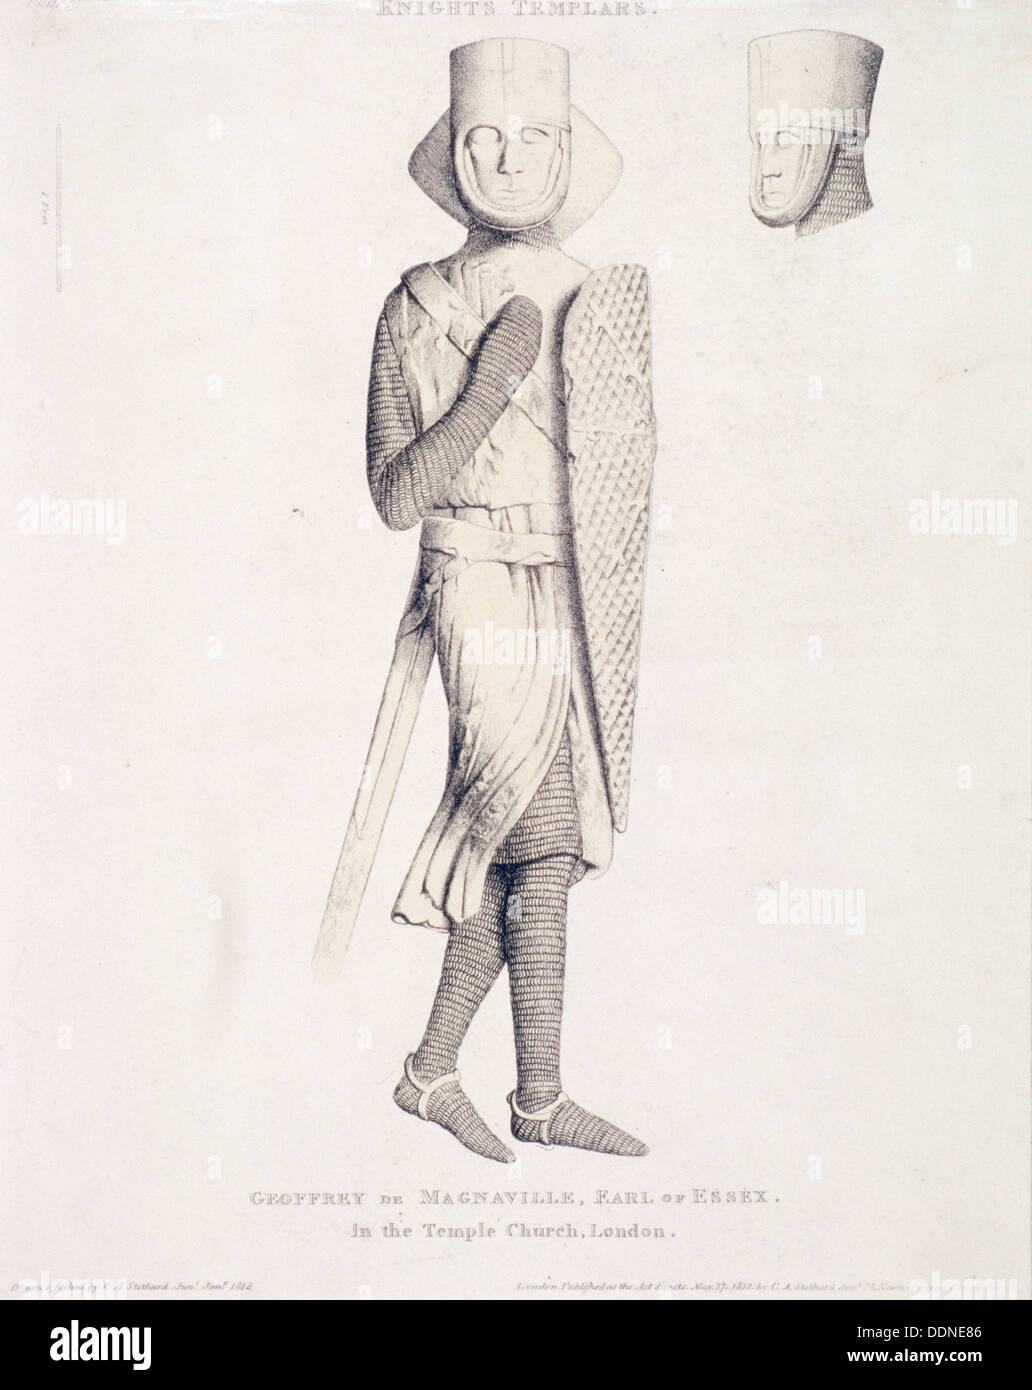 View of the effigy of Geoffrey de Mandeville, Earl of Essex, from Temple Church, London, 1840. Artist: Charles Alfred Stothard - Stock Image